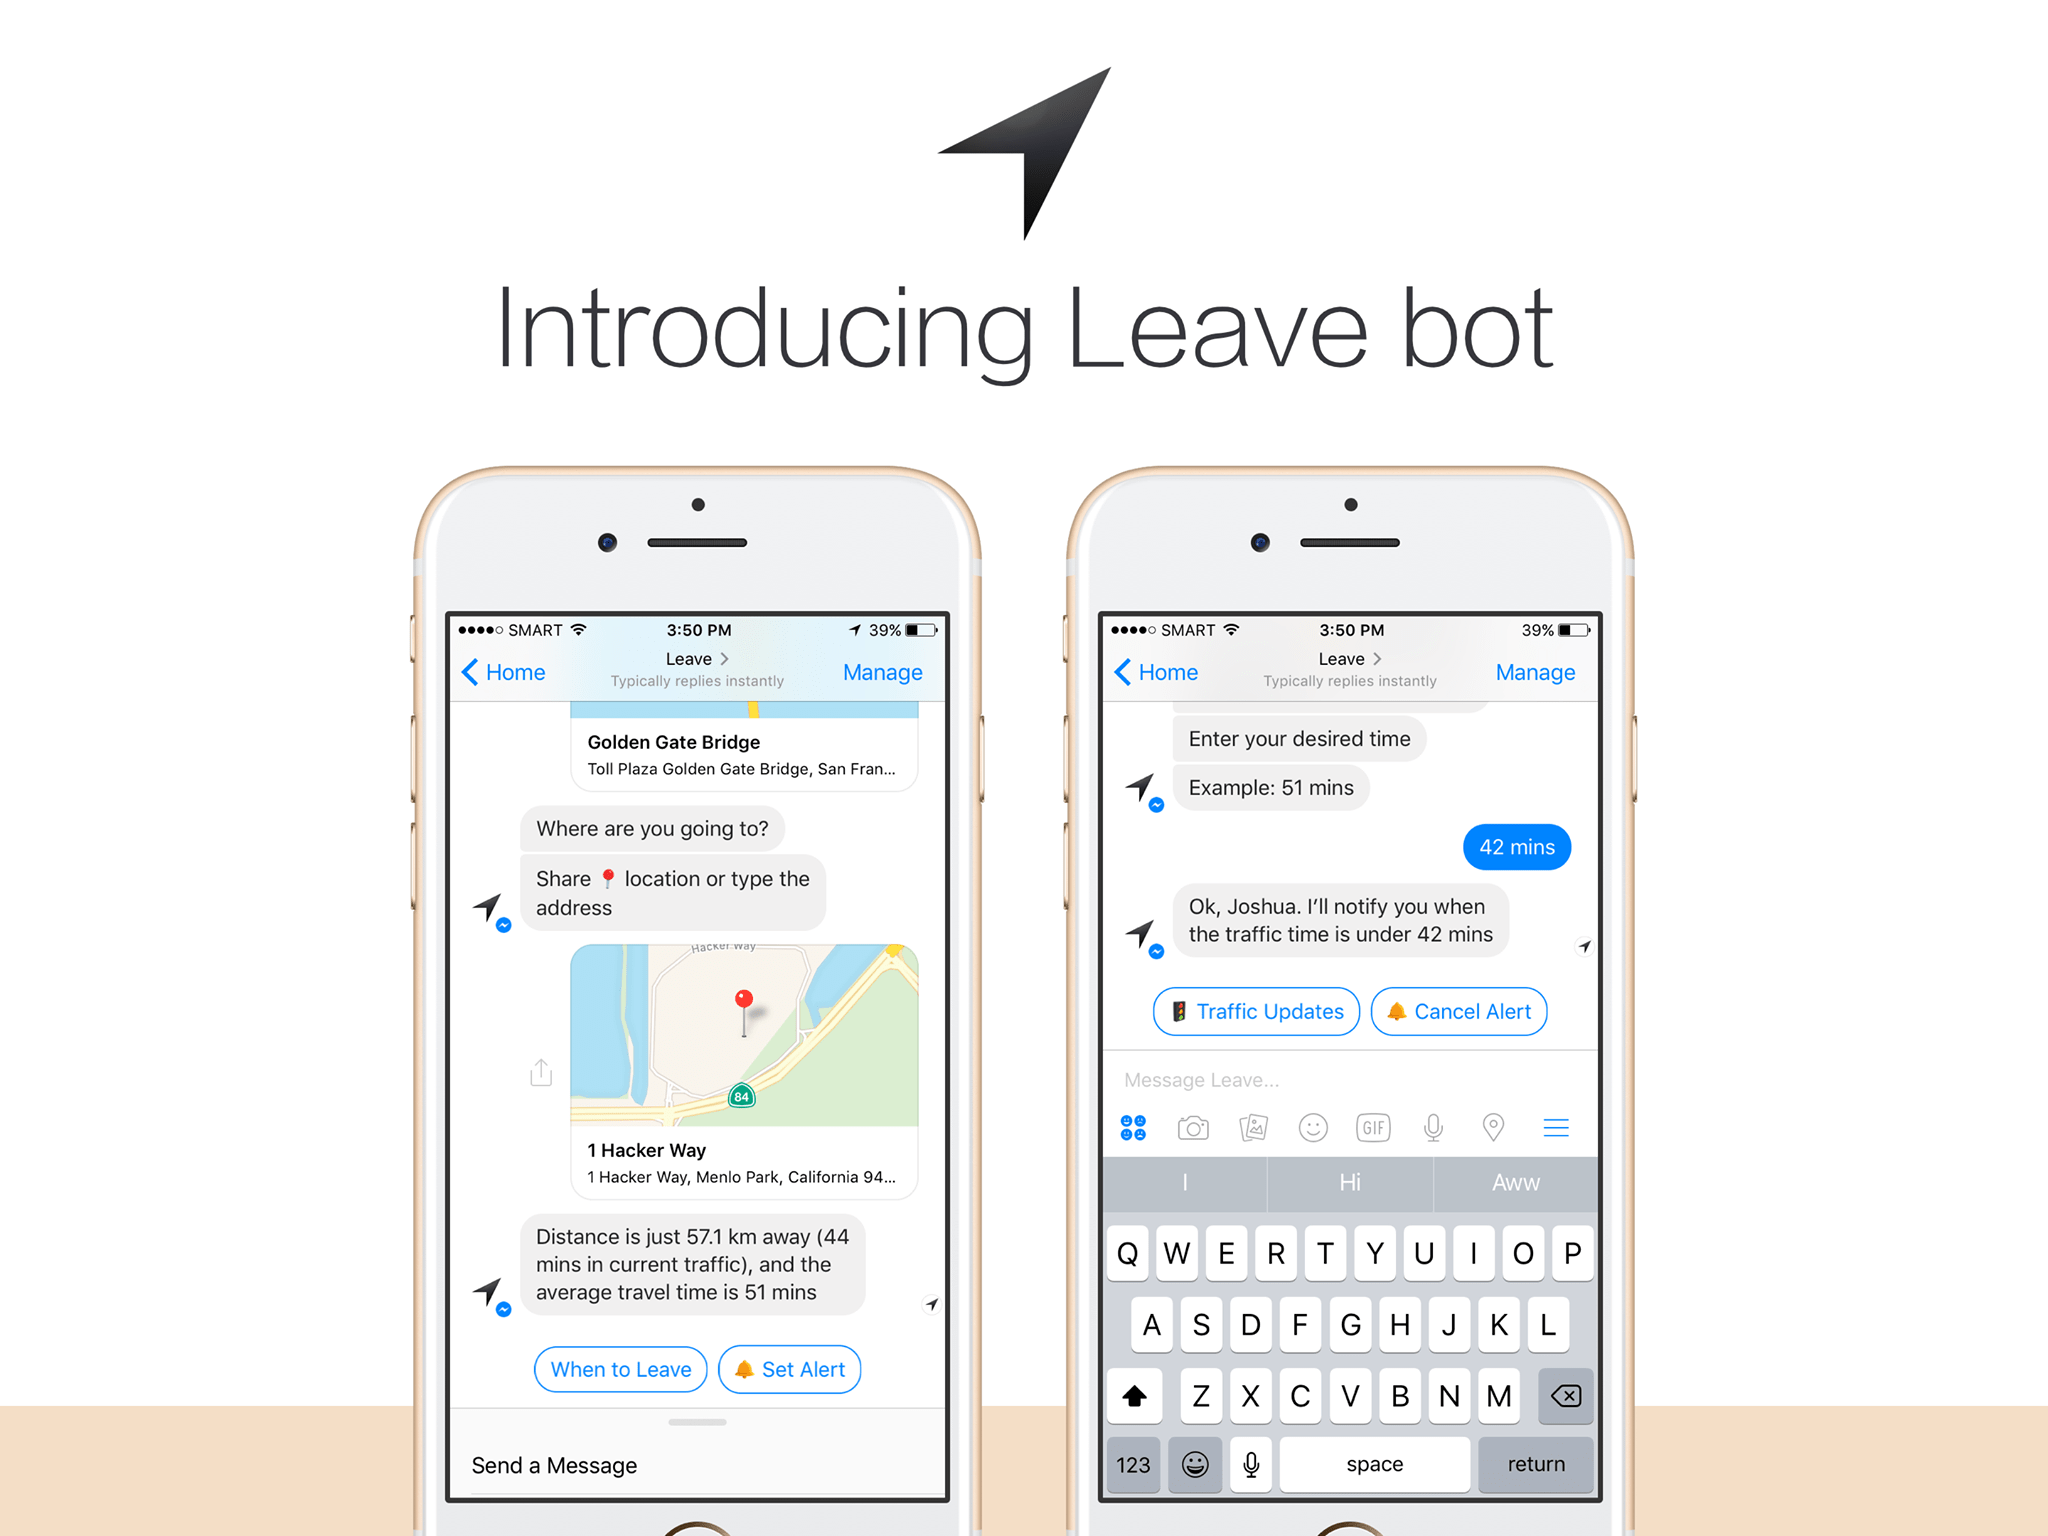 This mobile app helps people avoid traffic by using chatbots